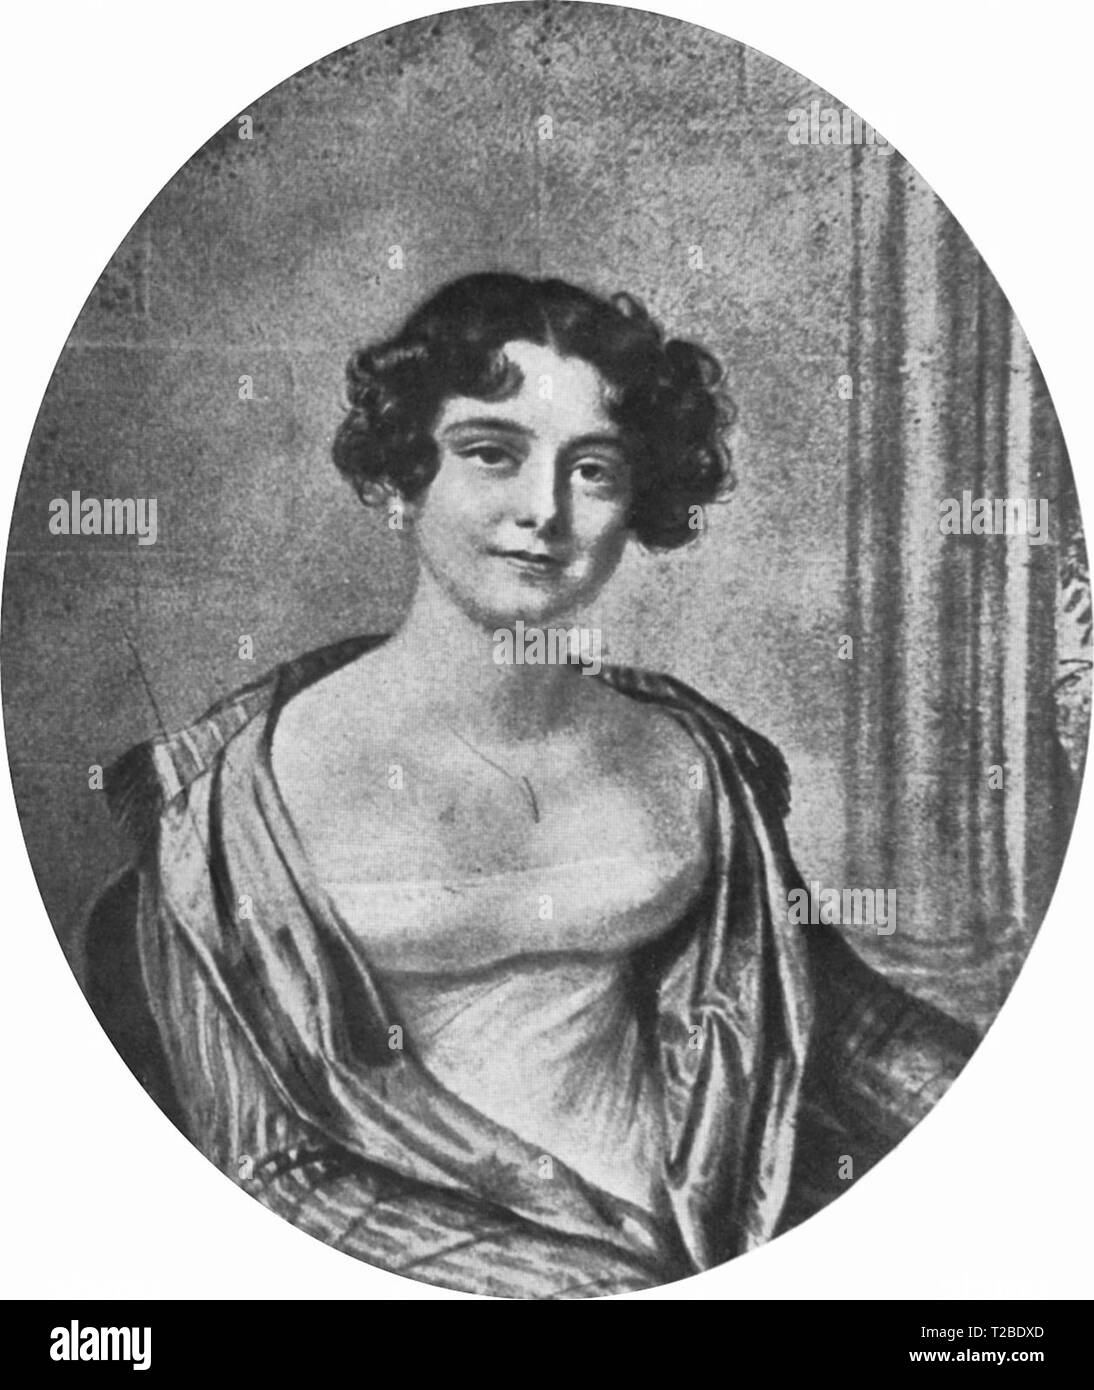 Jane Griffin, aged 24. Later Lady Jane Franklin. 1816 - Stock Image